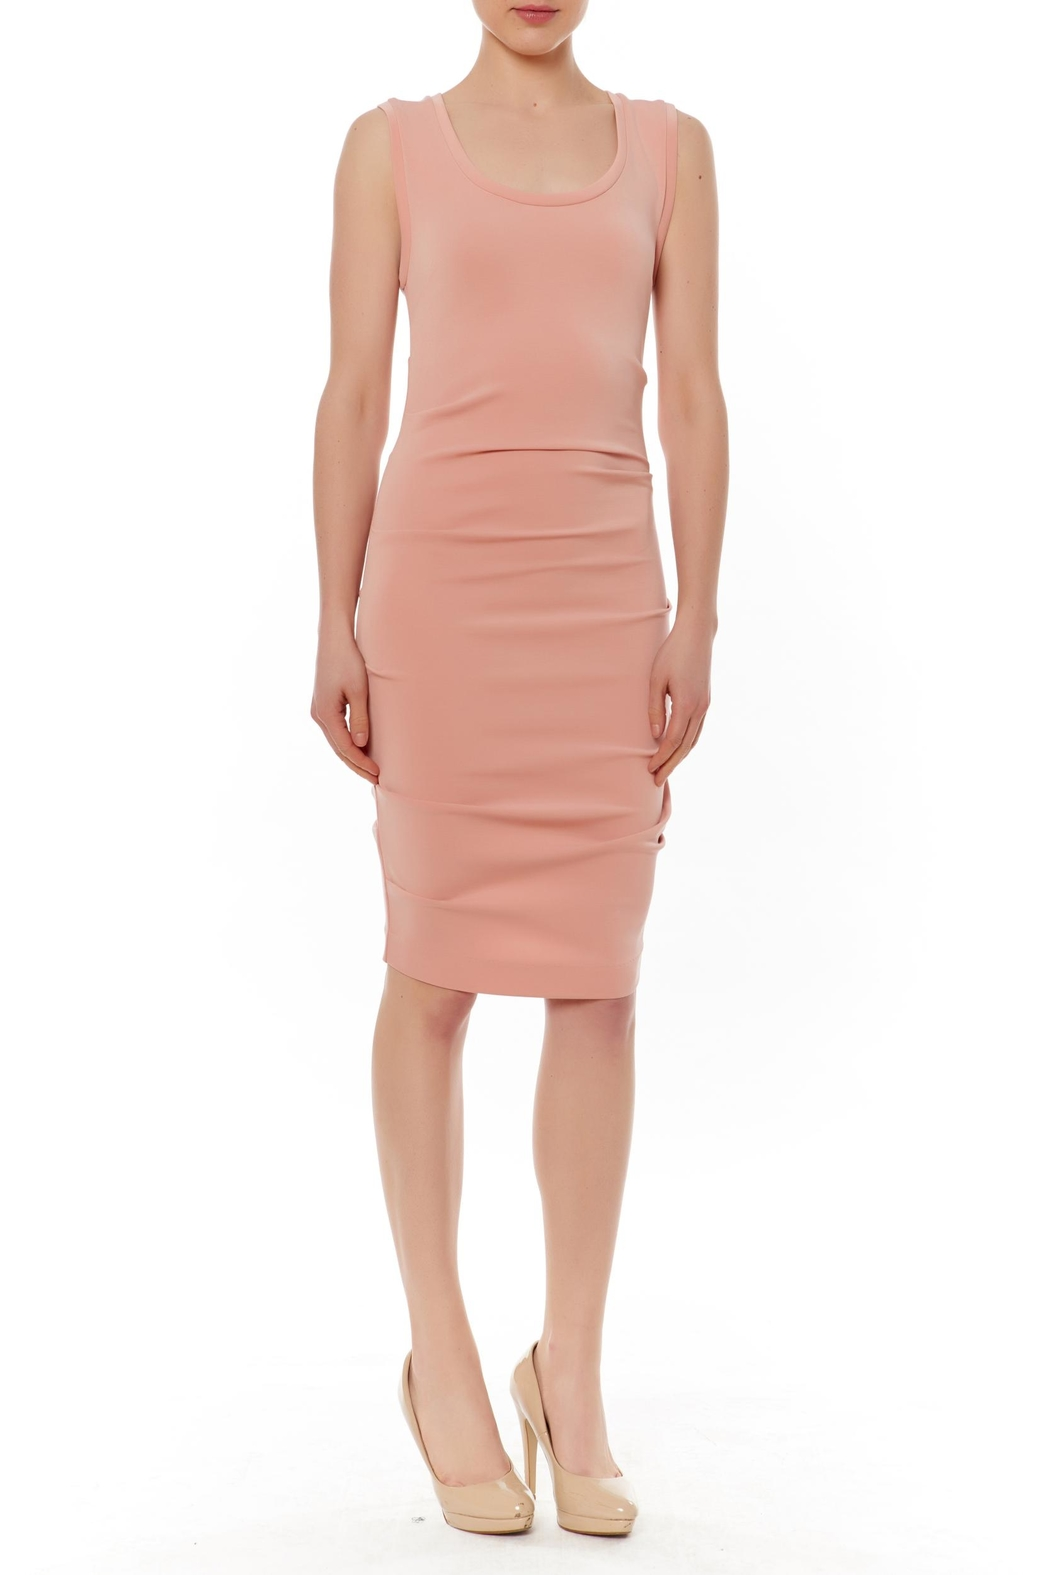 Nicole Miller Jersey Ruched Dress - Main Image